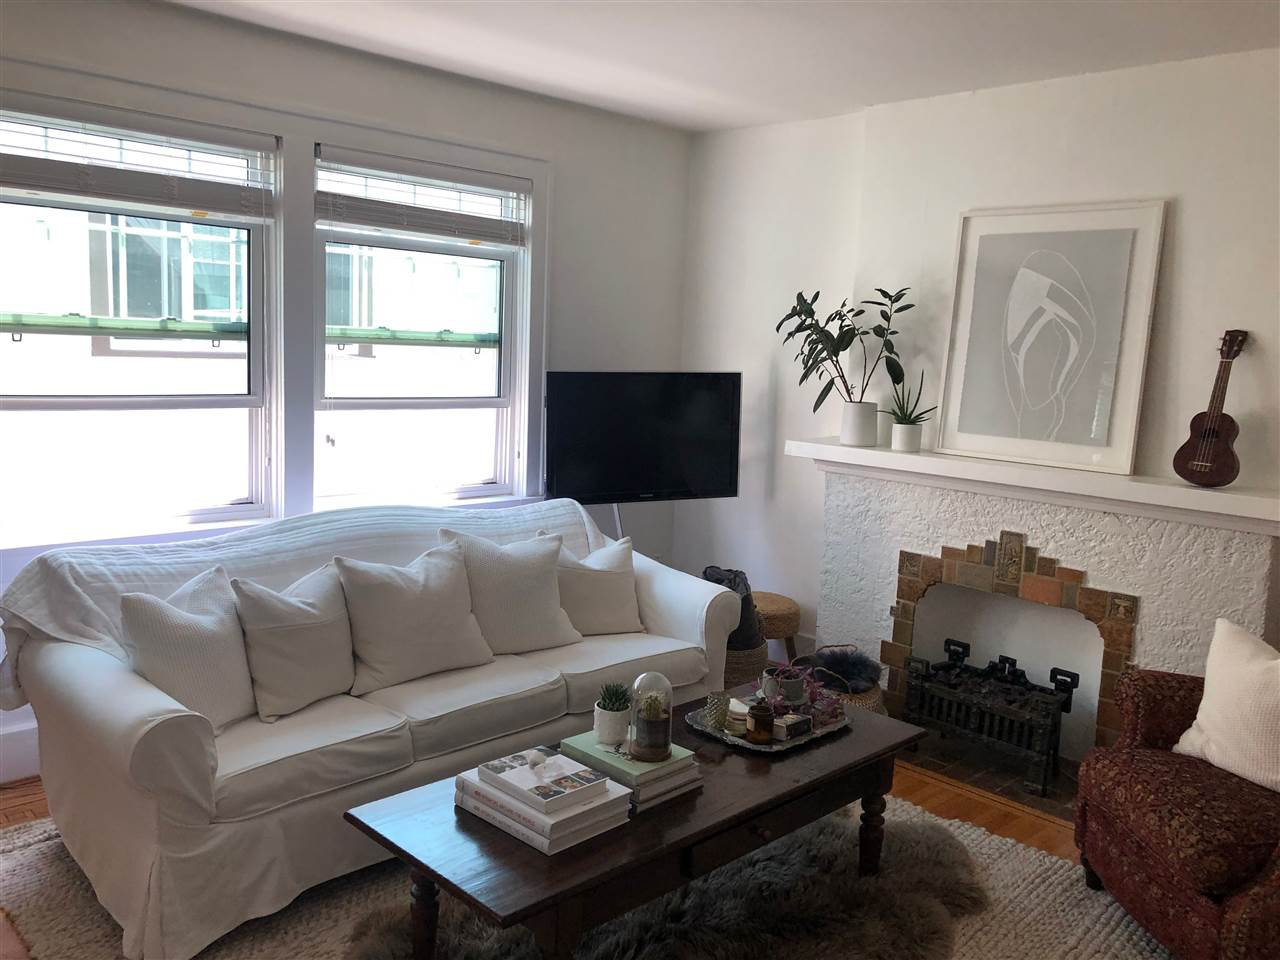 """Main Photo: 306 1545 W 13TH Avenue in Vancouver: Fairview VW Condo for sale in """"THE LEICESTER"""" (Vancouver West)  : MLS®# R2481541"""